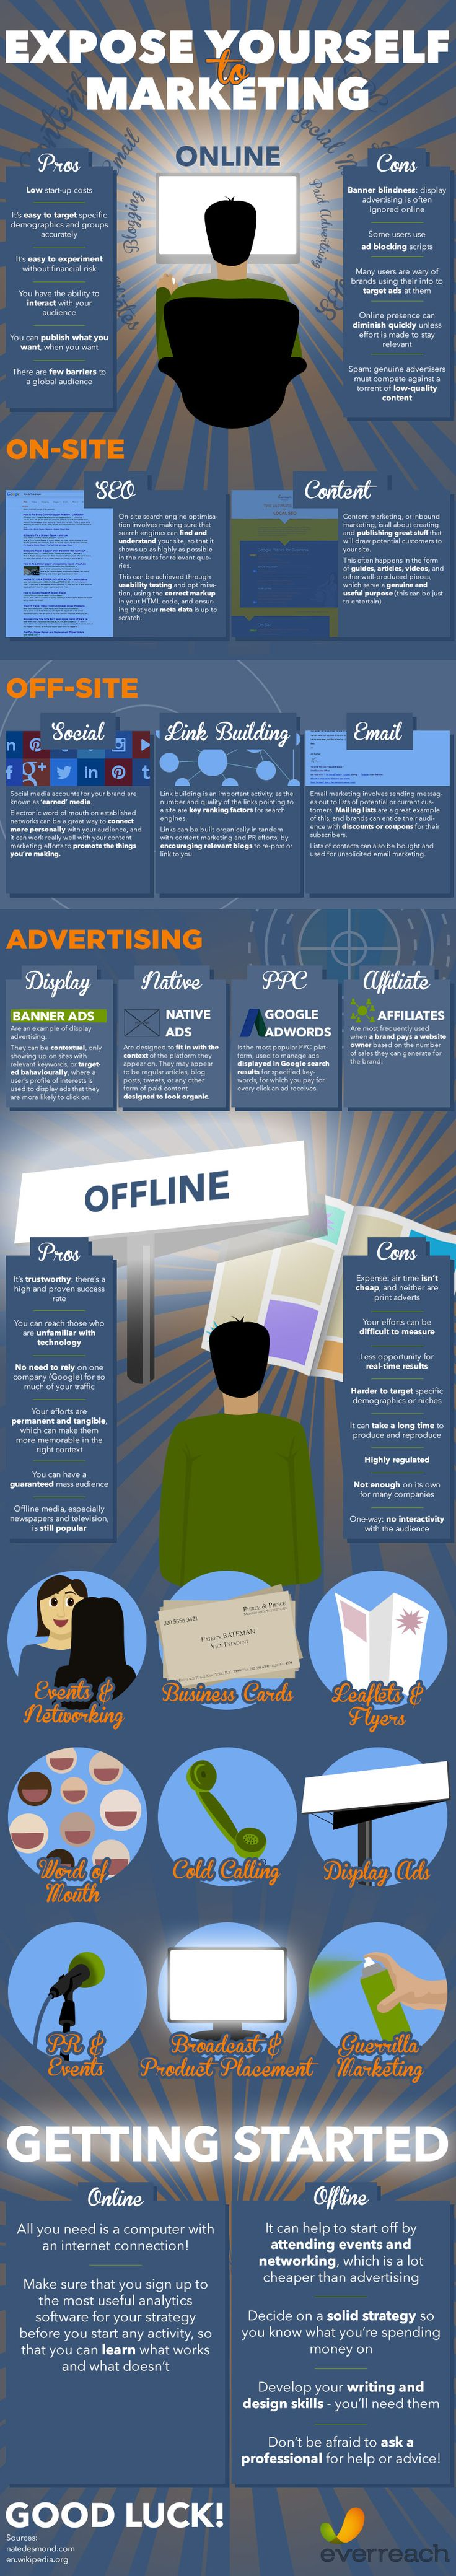 Infographic: Expose Yourself to Marketing. Learn how to expose your business to your target audience. Discover what marketing solutions are available to you both off- and on-line.